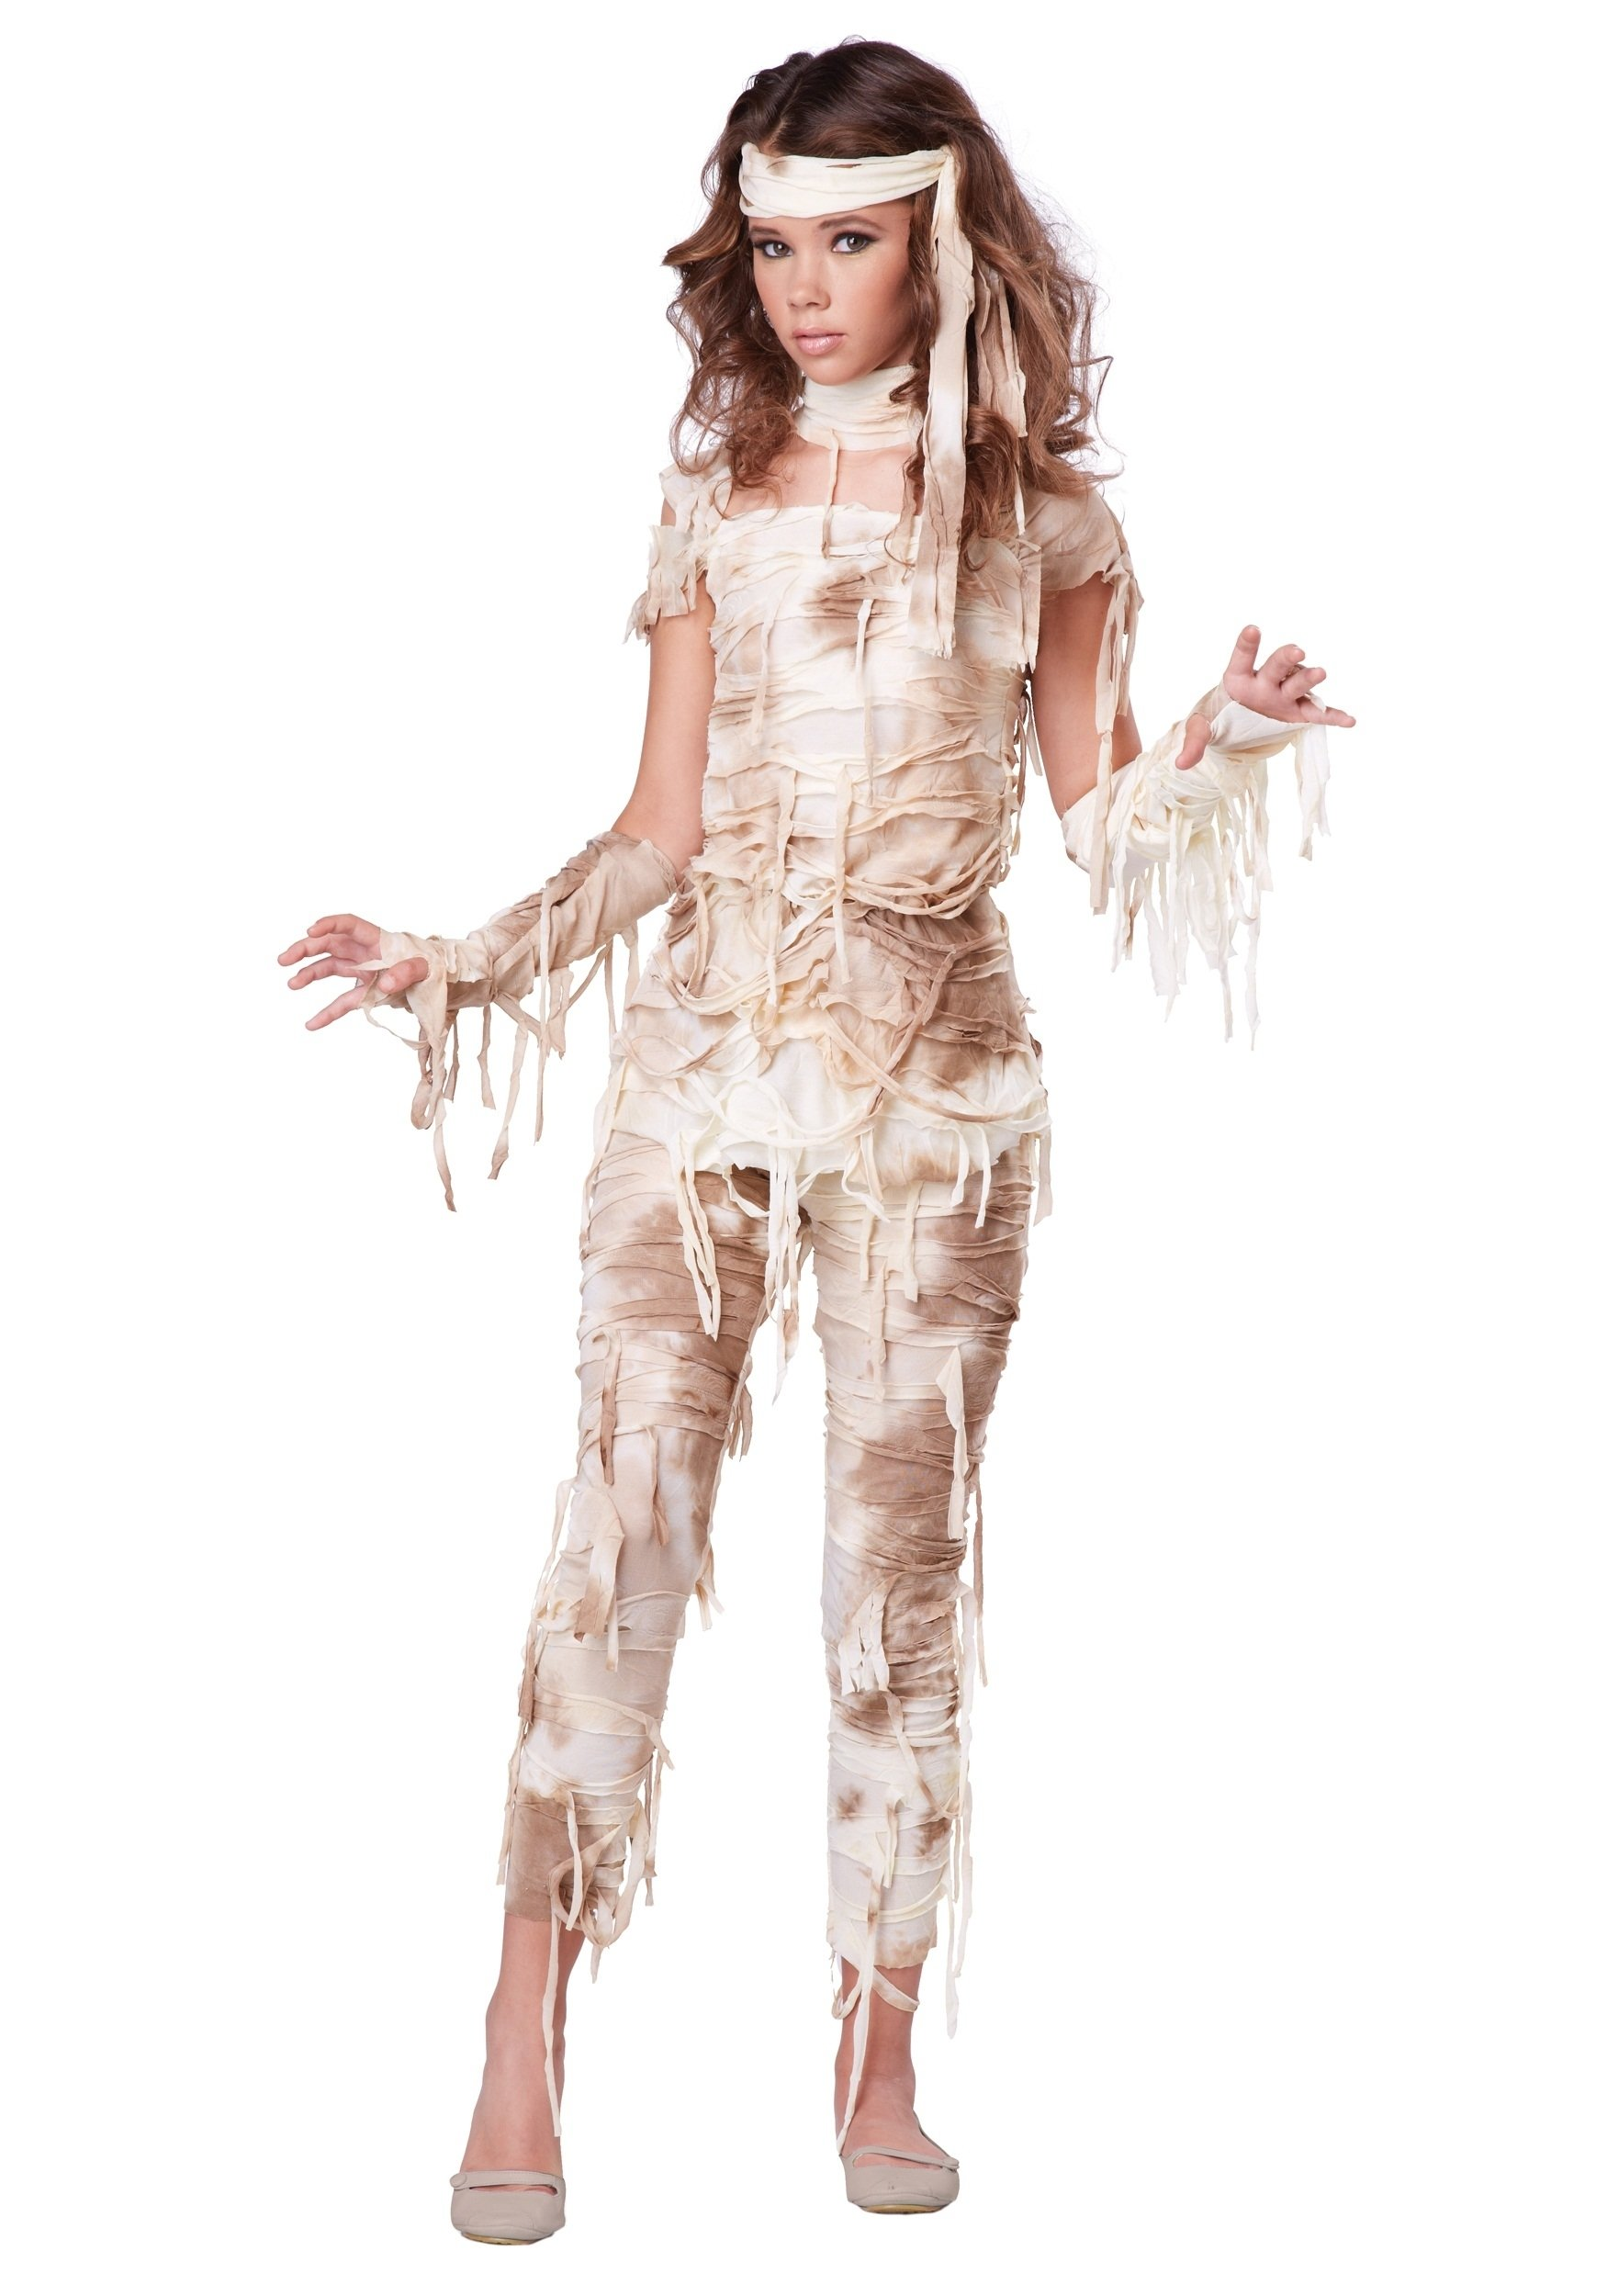 10 Fashionable Scary Costume Ideas For Girls teen mysterious mummy costume